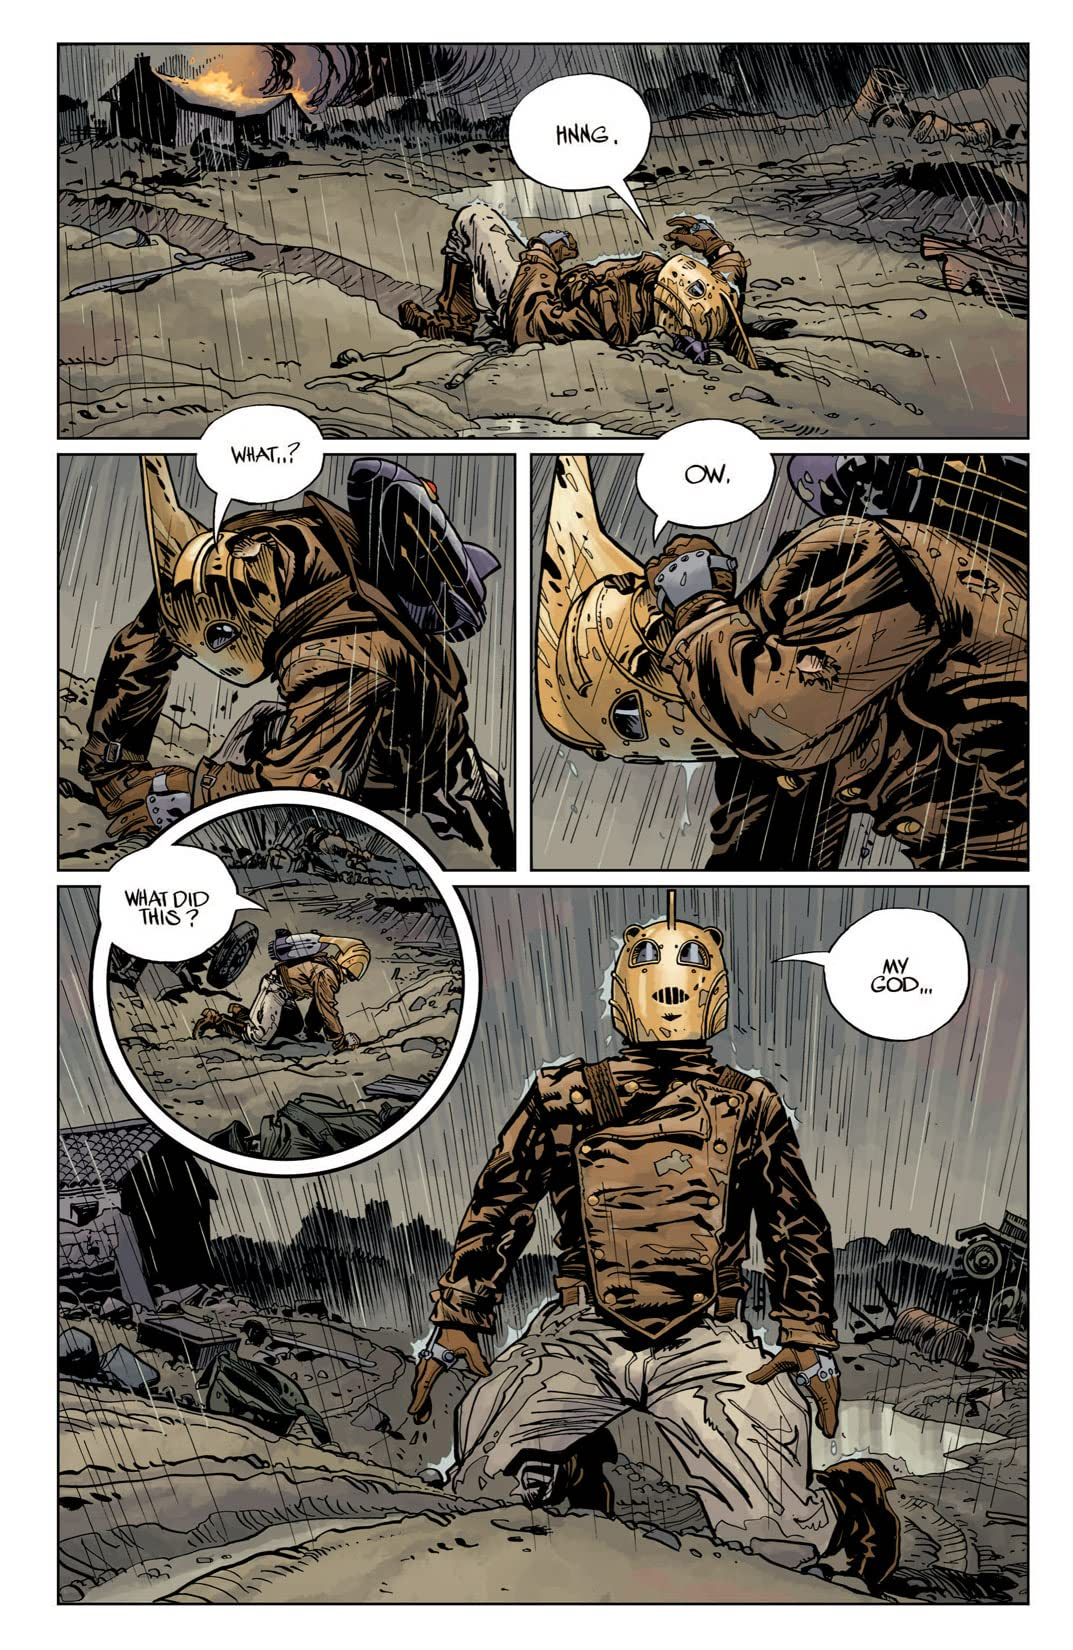 Rocketeer Adventures 2 #2 (of 4)